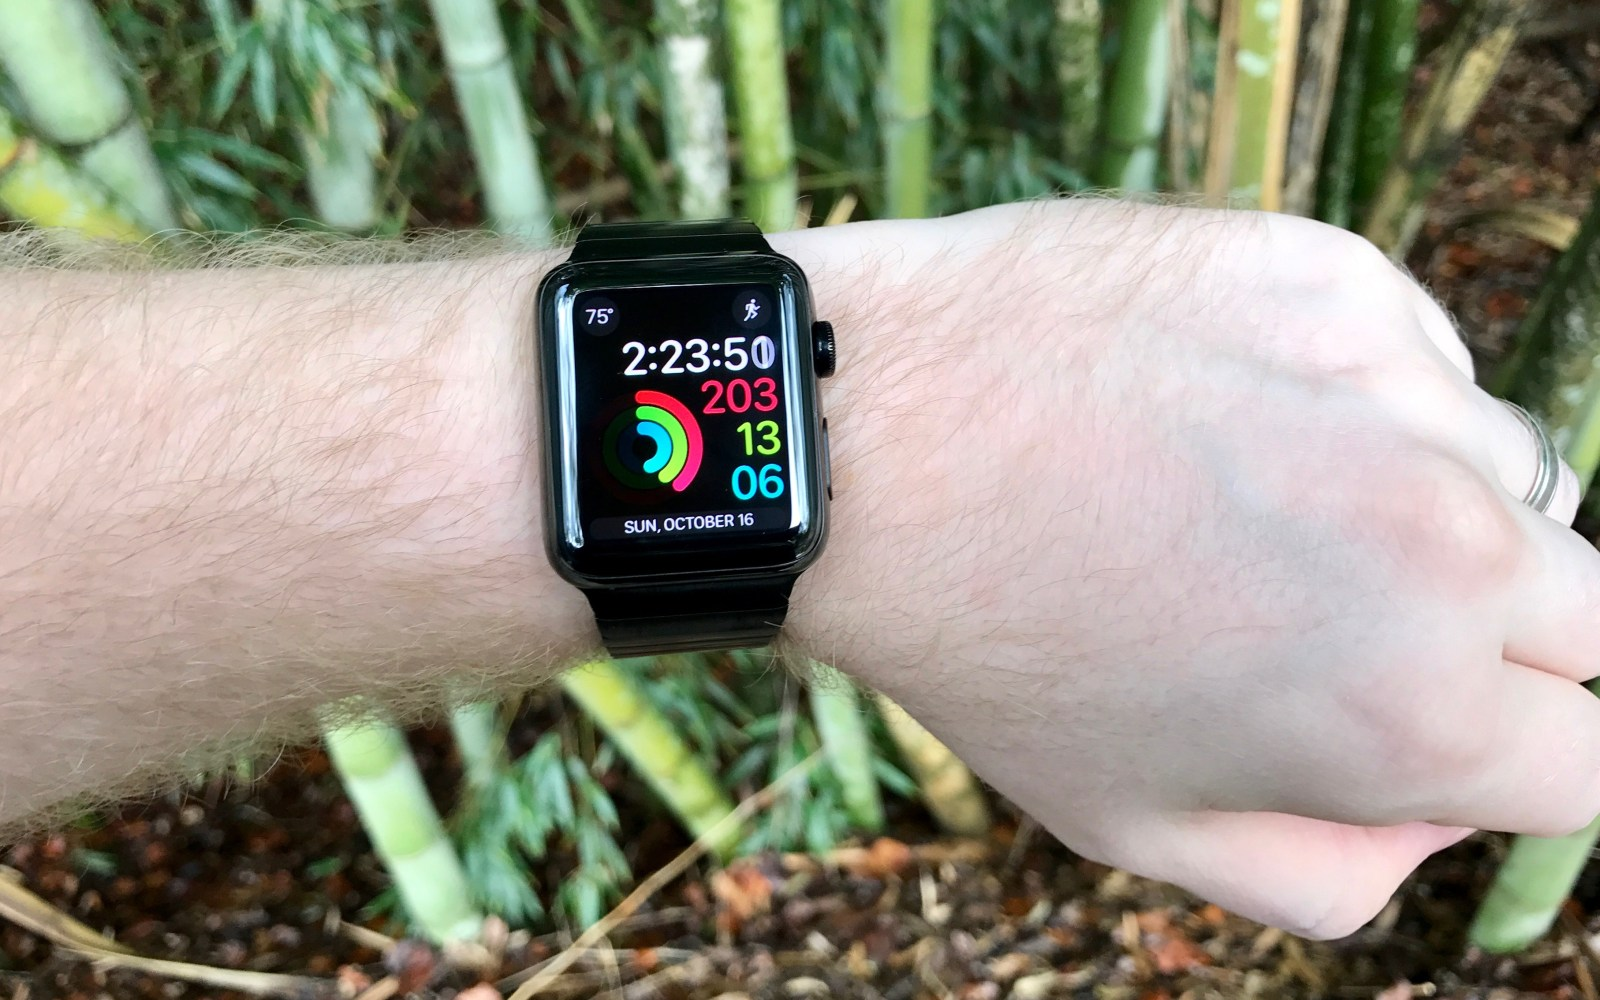 Apple Watch Series 2 post-review tidbits: watchOS 3.1 battery life, GPS navigation, water resistance & more